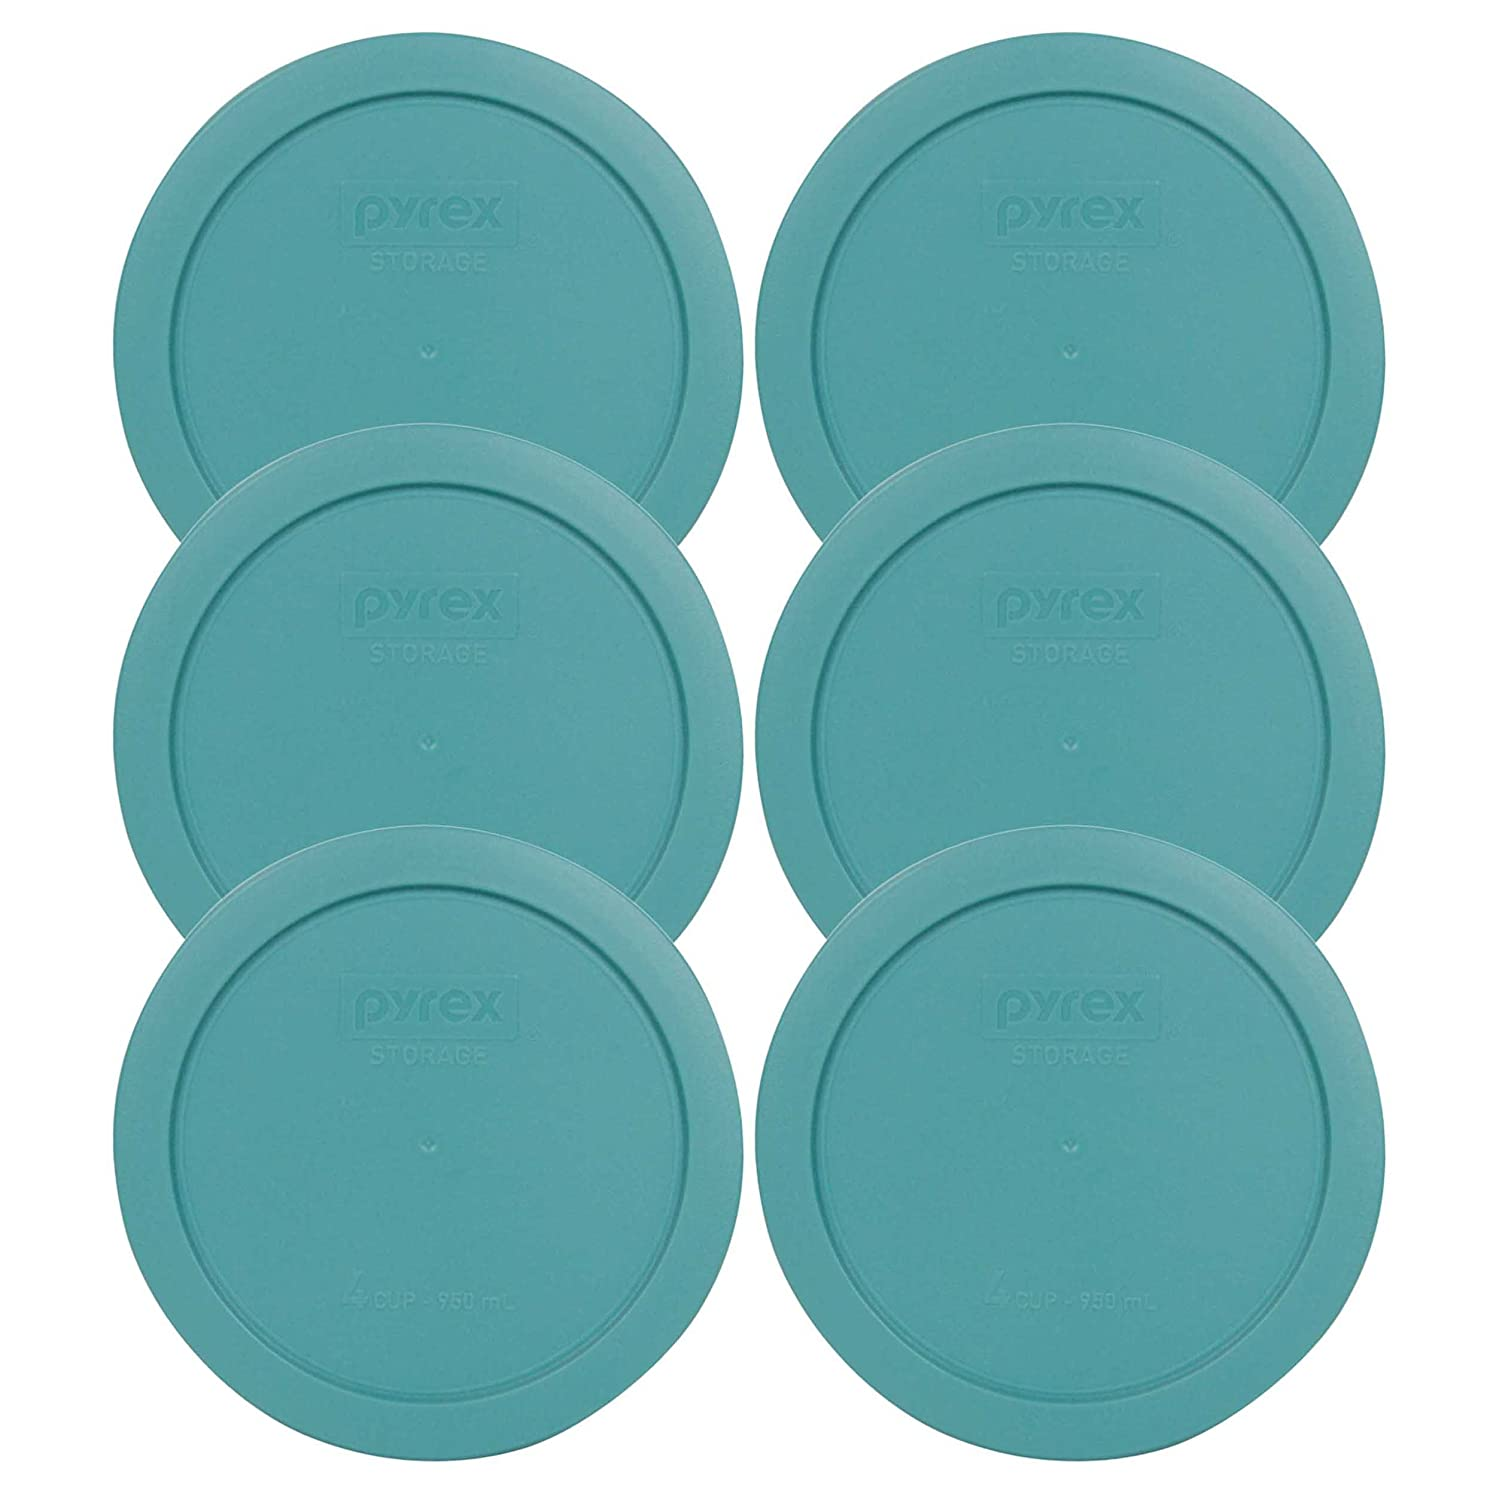 Pyrex 7201-PC Round 4 Cup Storage Lid for Glass Bowls (6, Turquoise)